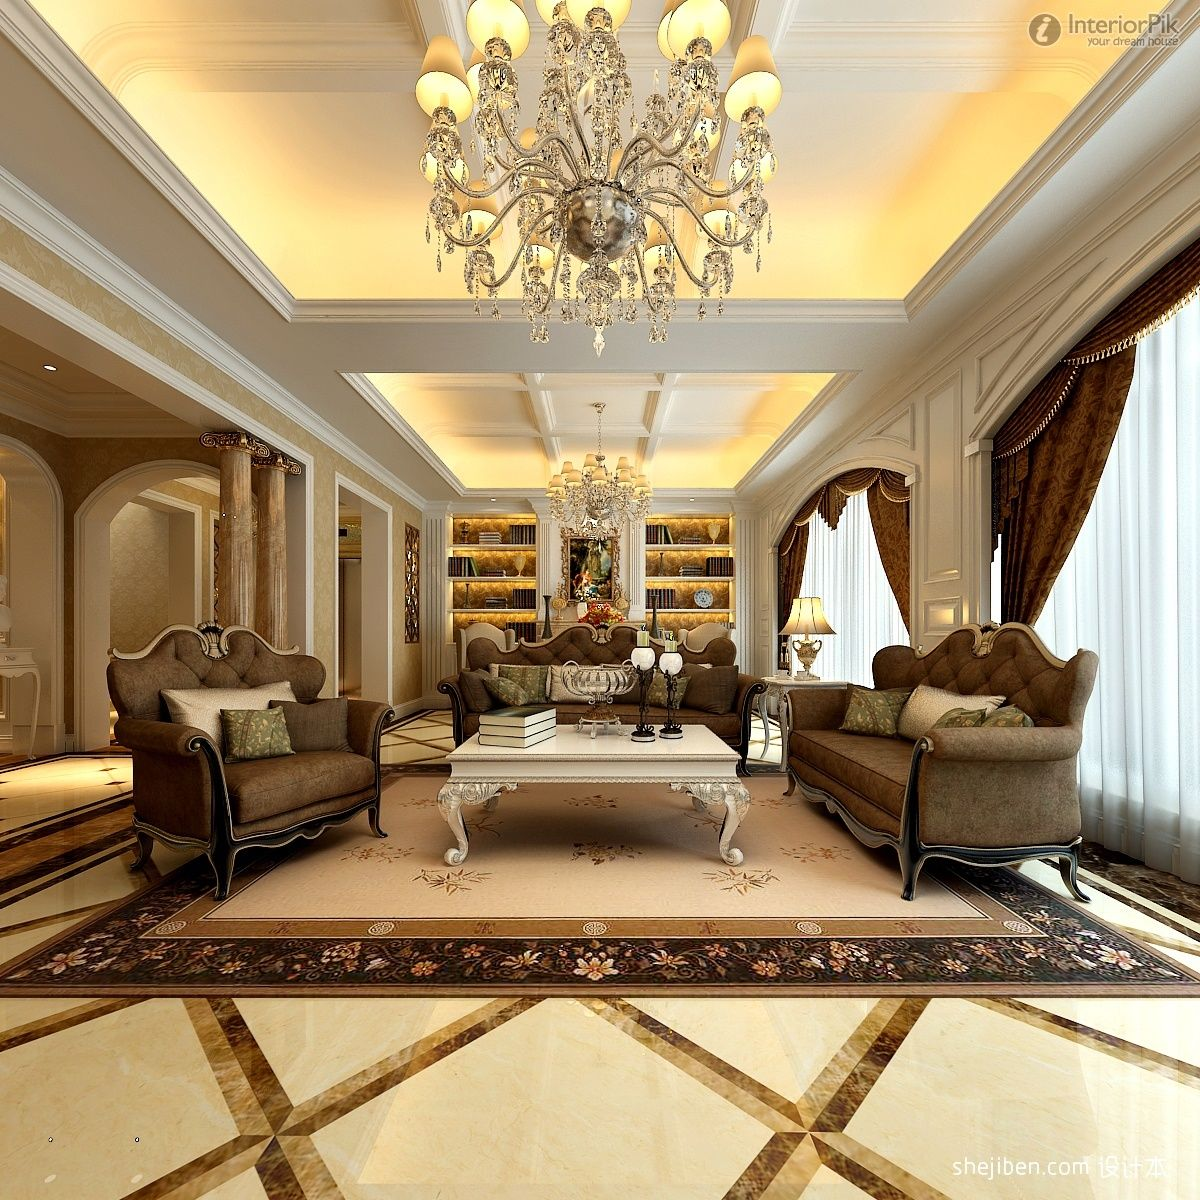 European ceiling lighting for living room with brown sofa sets and european ceiling lighting for living room with brown sofa sets and marble flooring mozeypictures Gallery